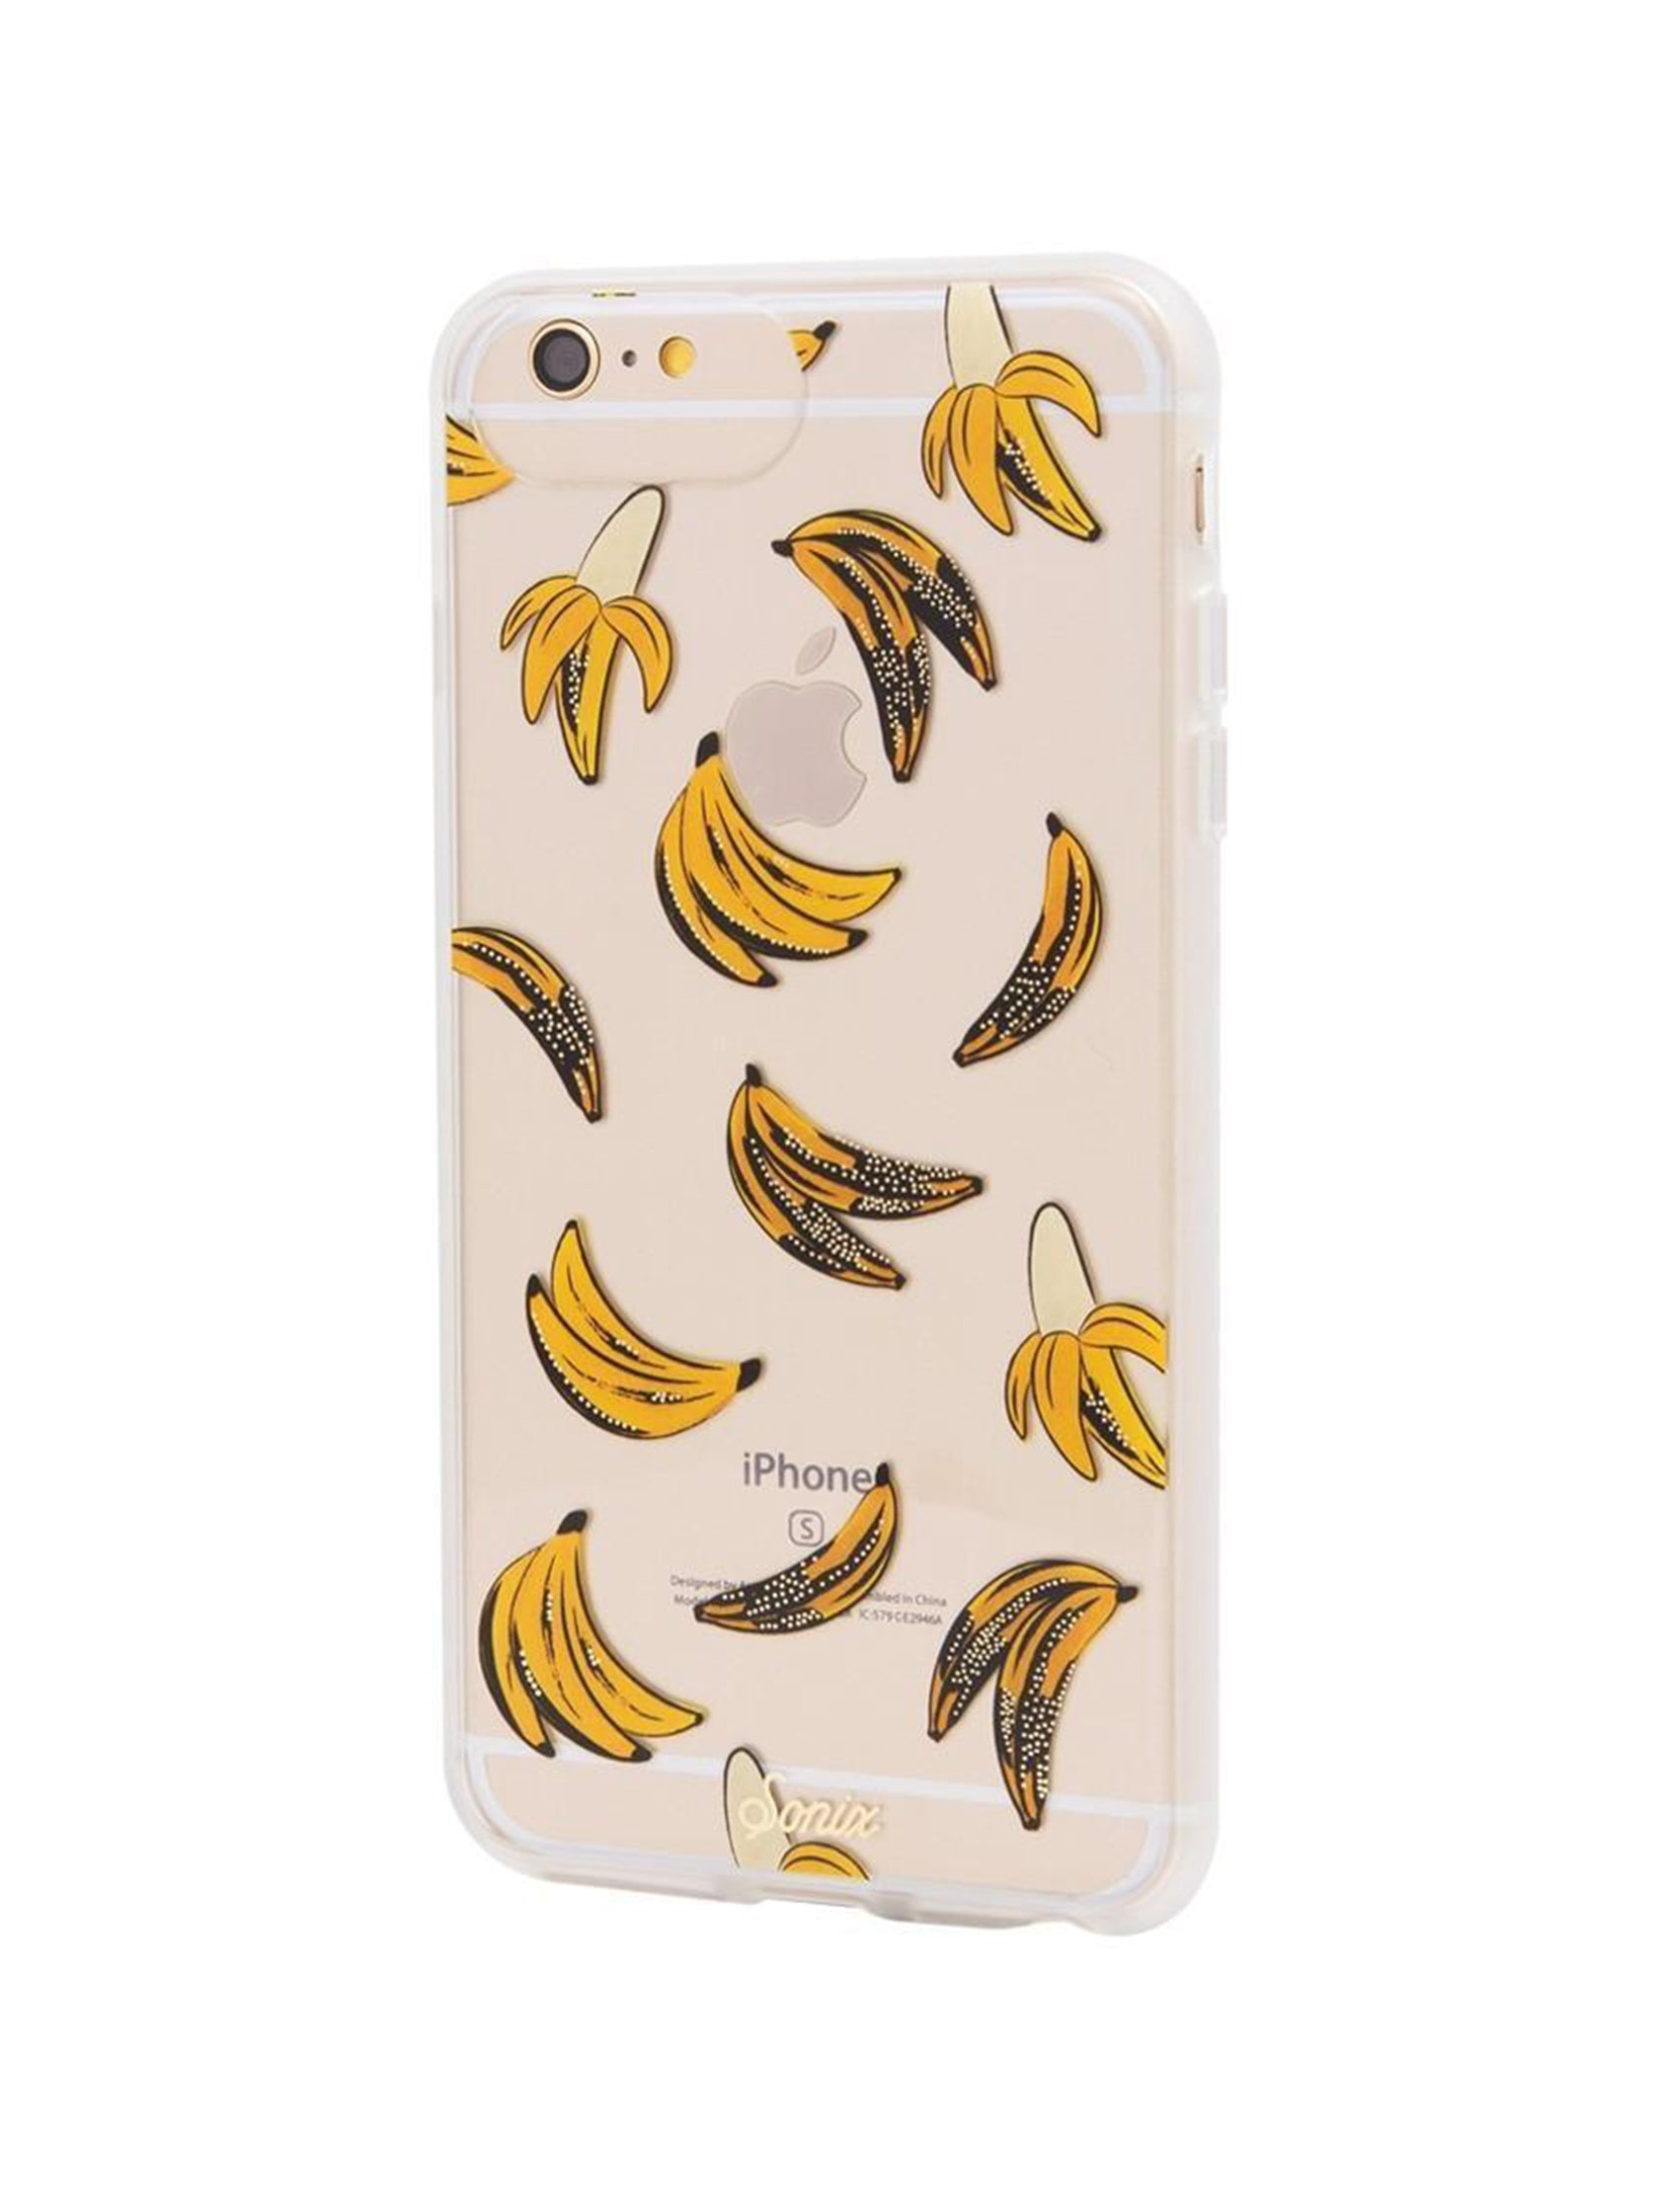 Women outfit in a phone case rental from Sonix called Banana Babe